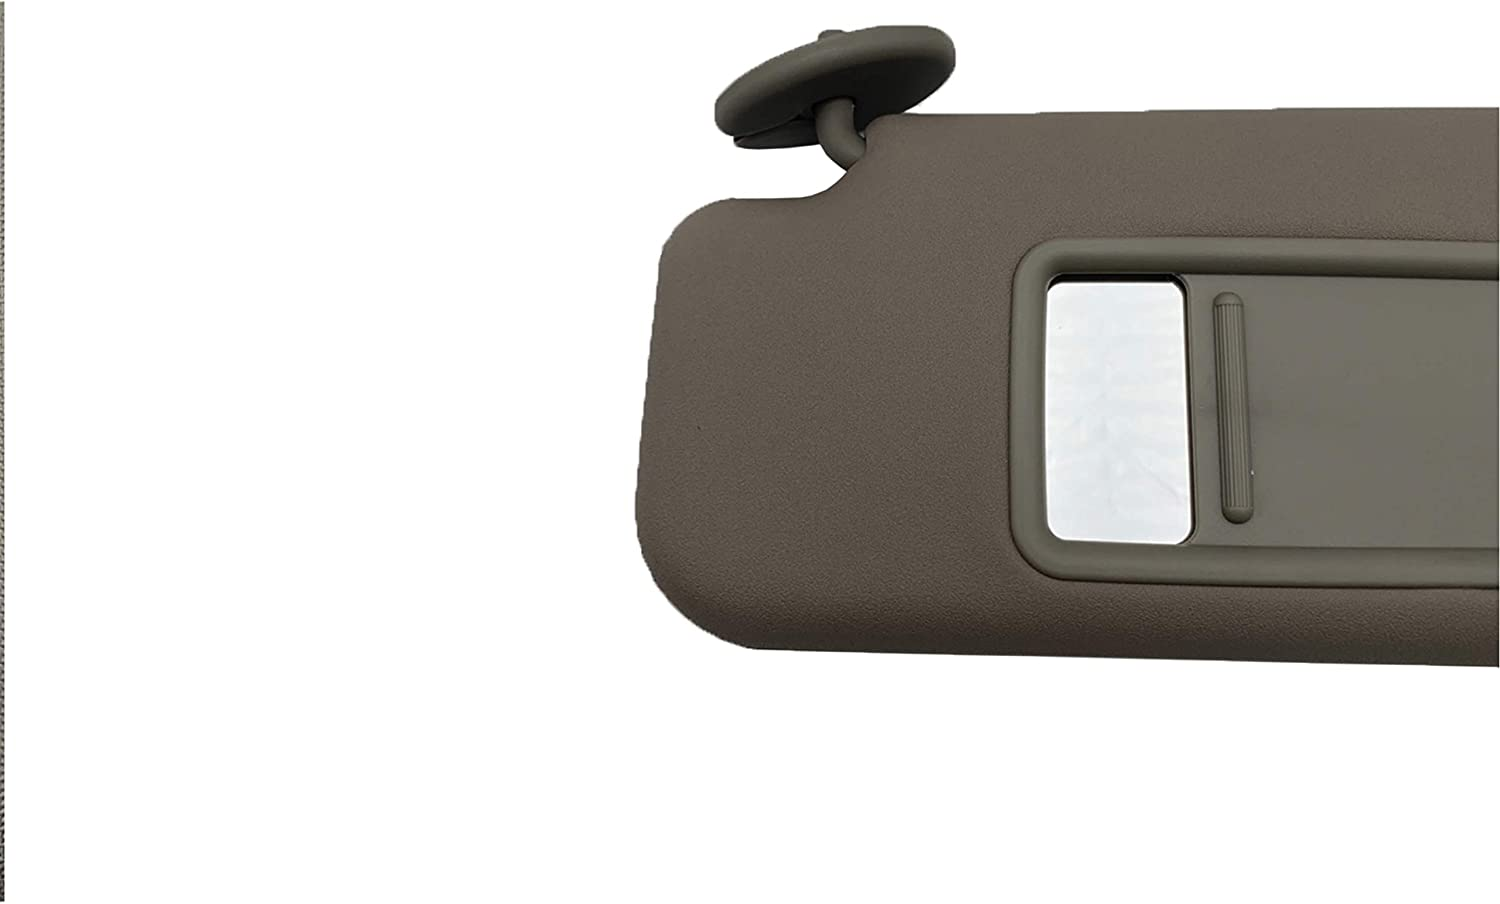 SAILEAD Left Driver Side Sun Visor for Toyota 4Runner 2004-2008 74320-35A91-E1 Beige